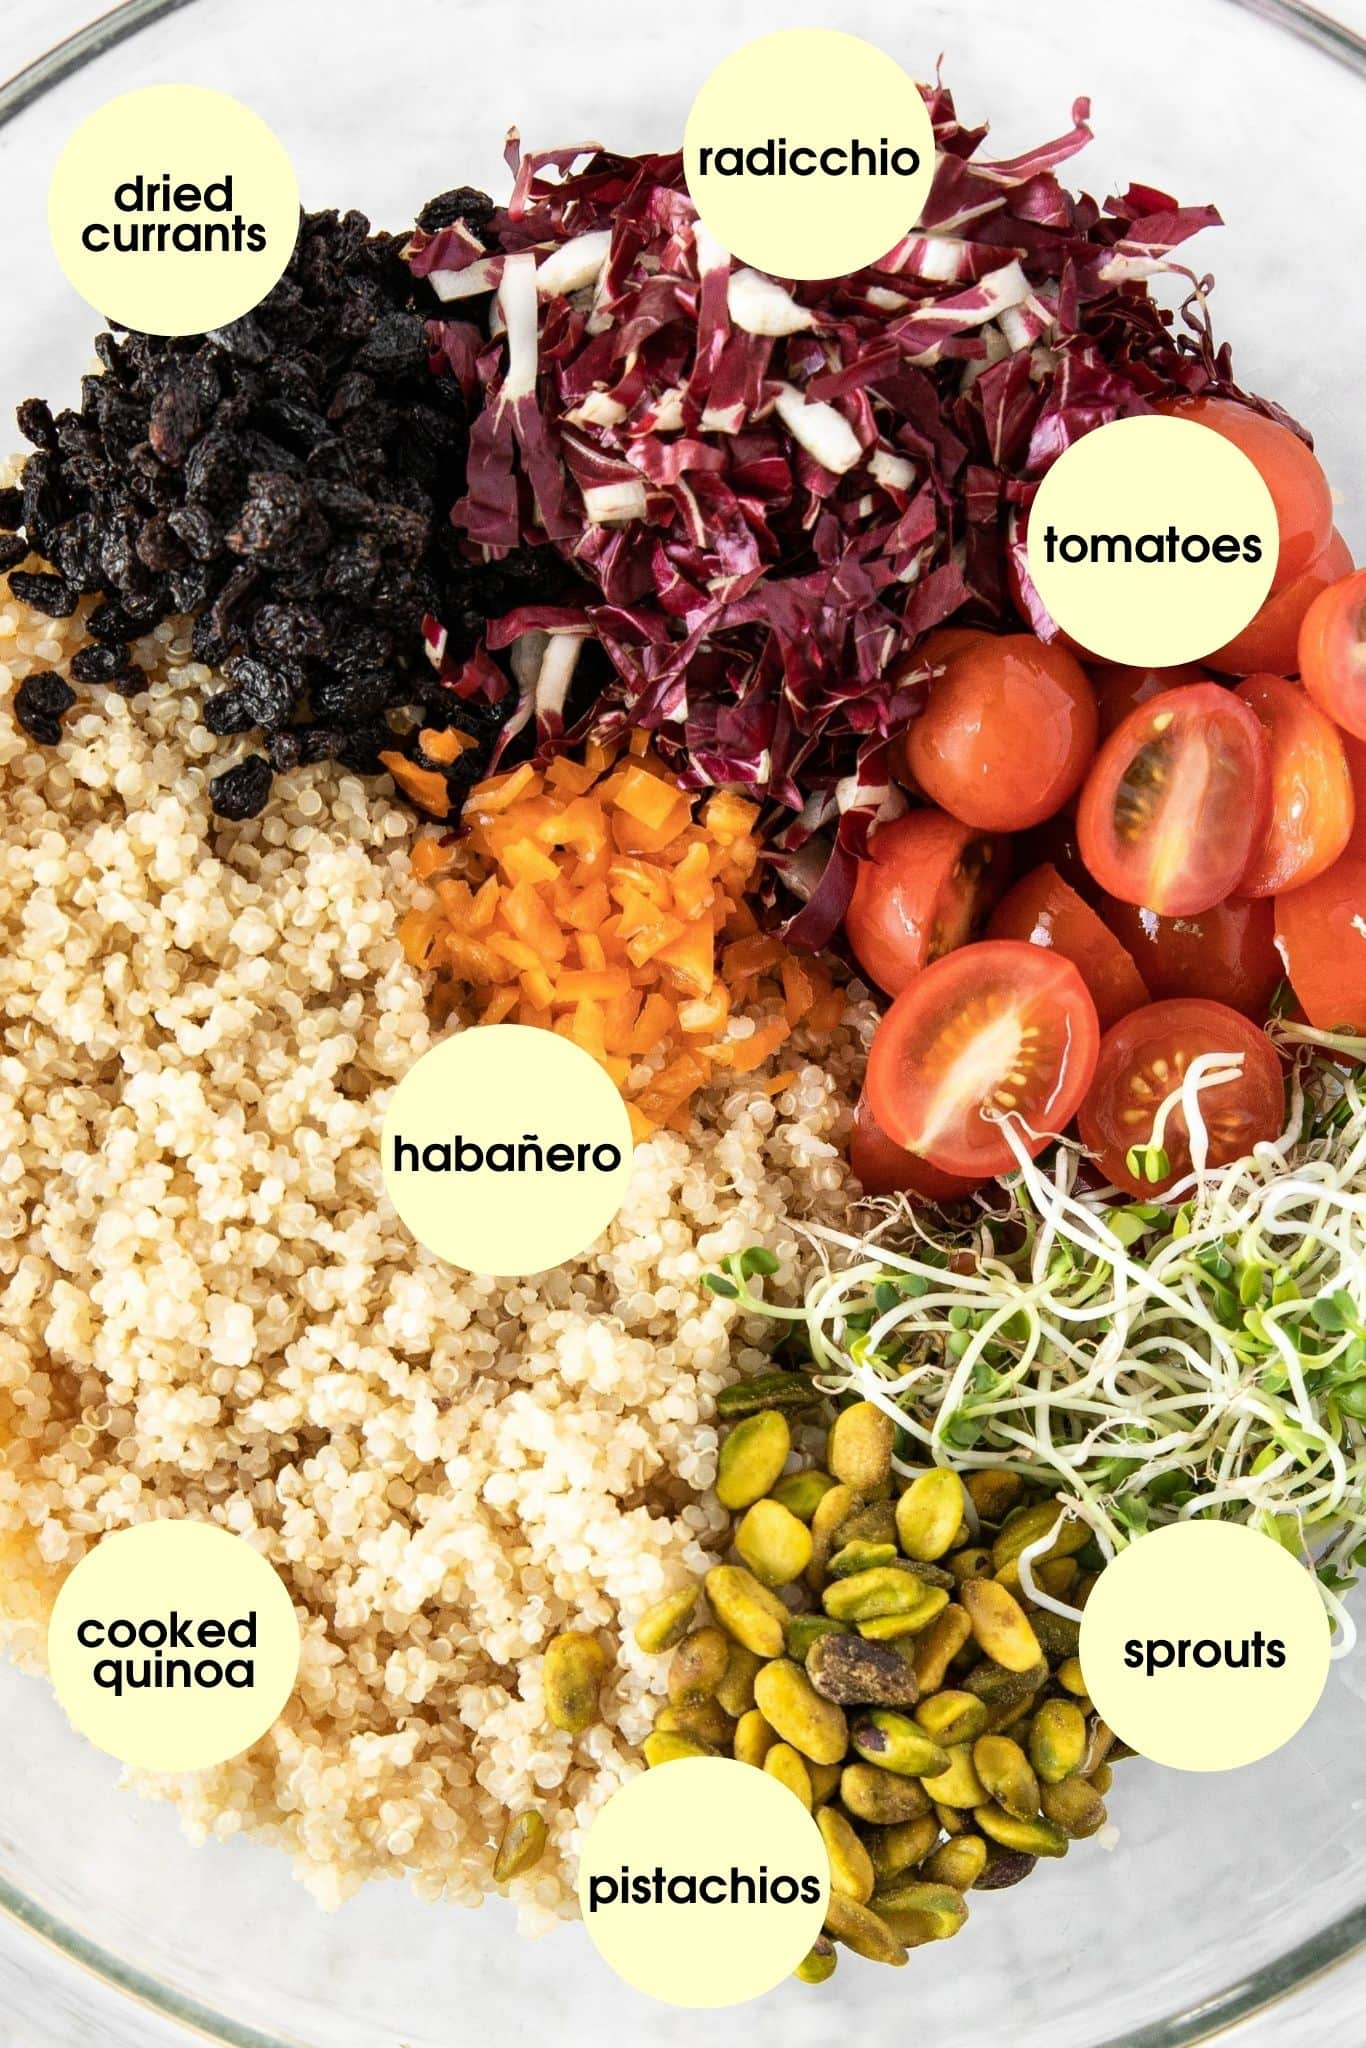 Ingredients for Quinoa Salad With Cherry Tomatoes, Radicchio, and Pistachios from verygoodcook.com